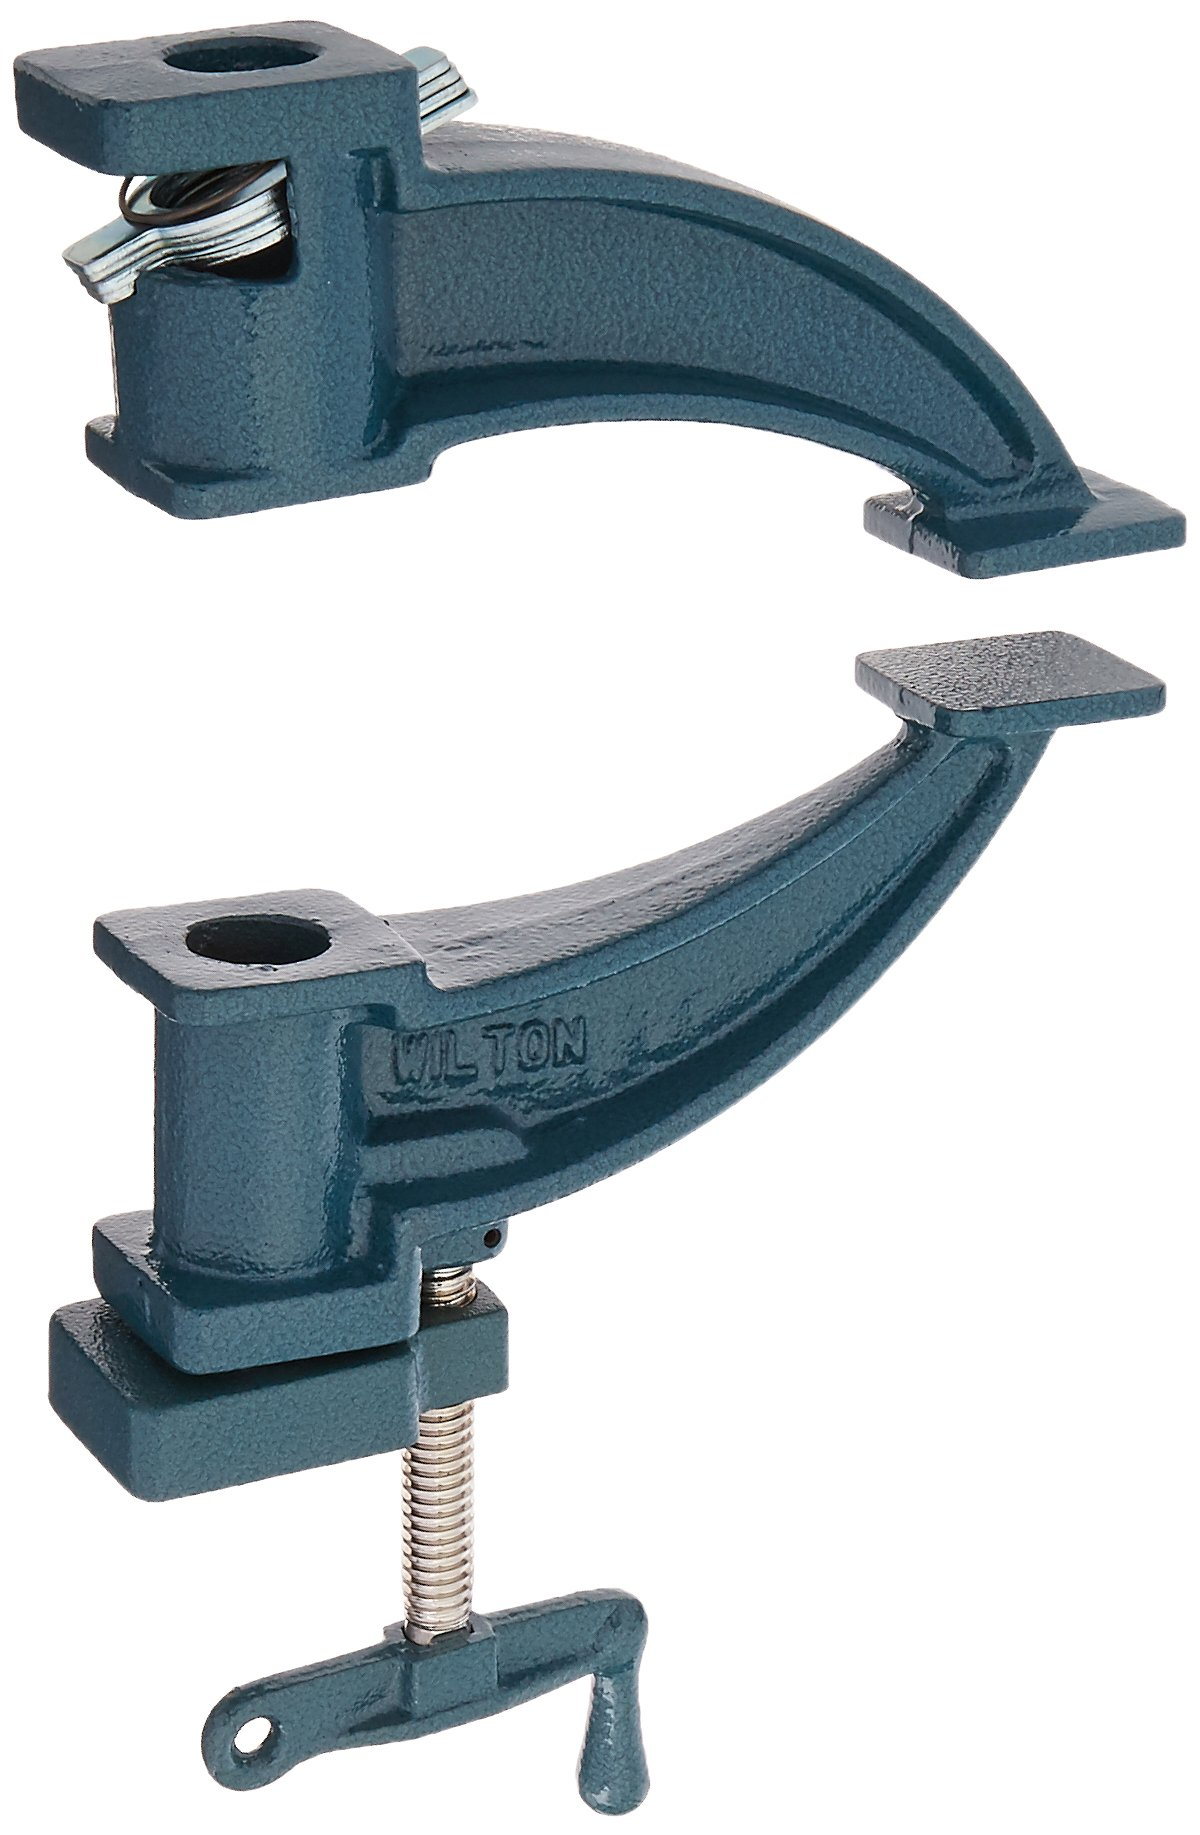 Wilton 14870 530, Steel Pipe Clamp Fixture, Deep-Throat, 3/4-Inch Threaded Pipe by Wilton